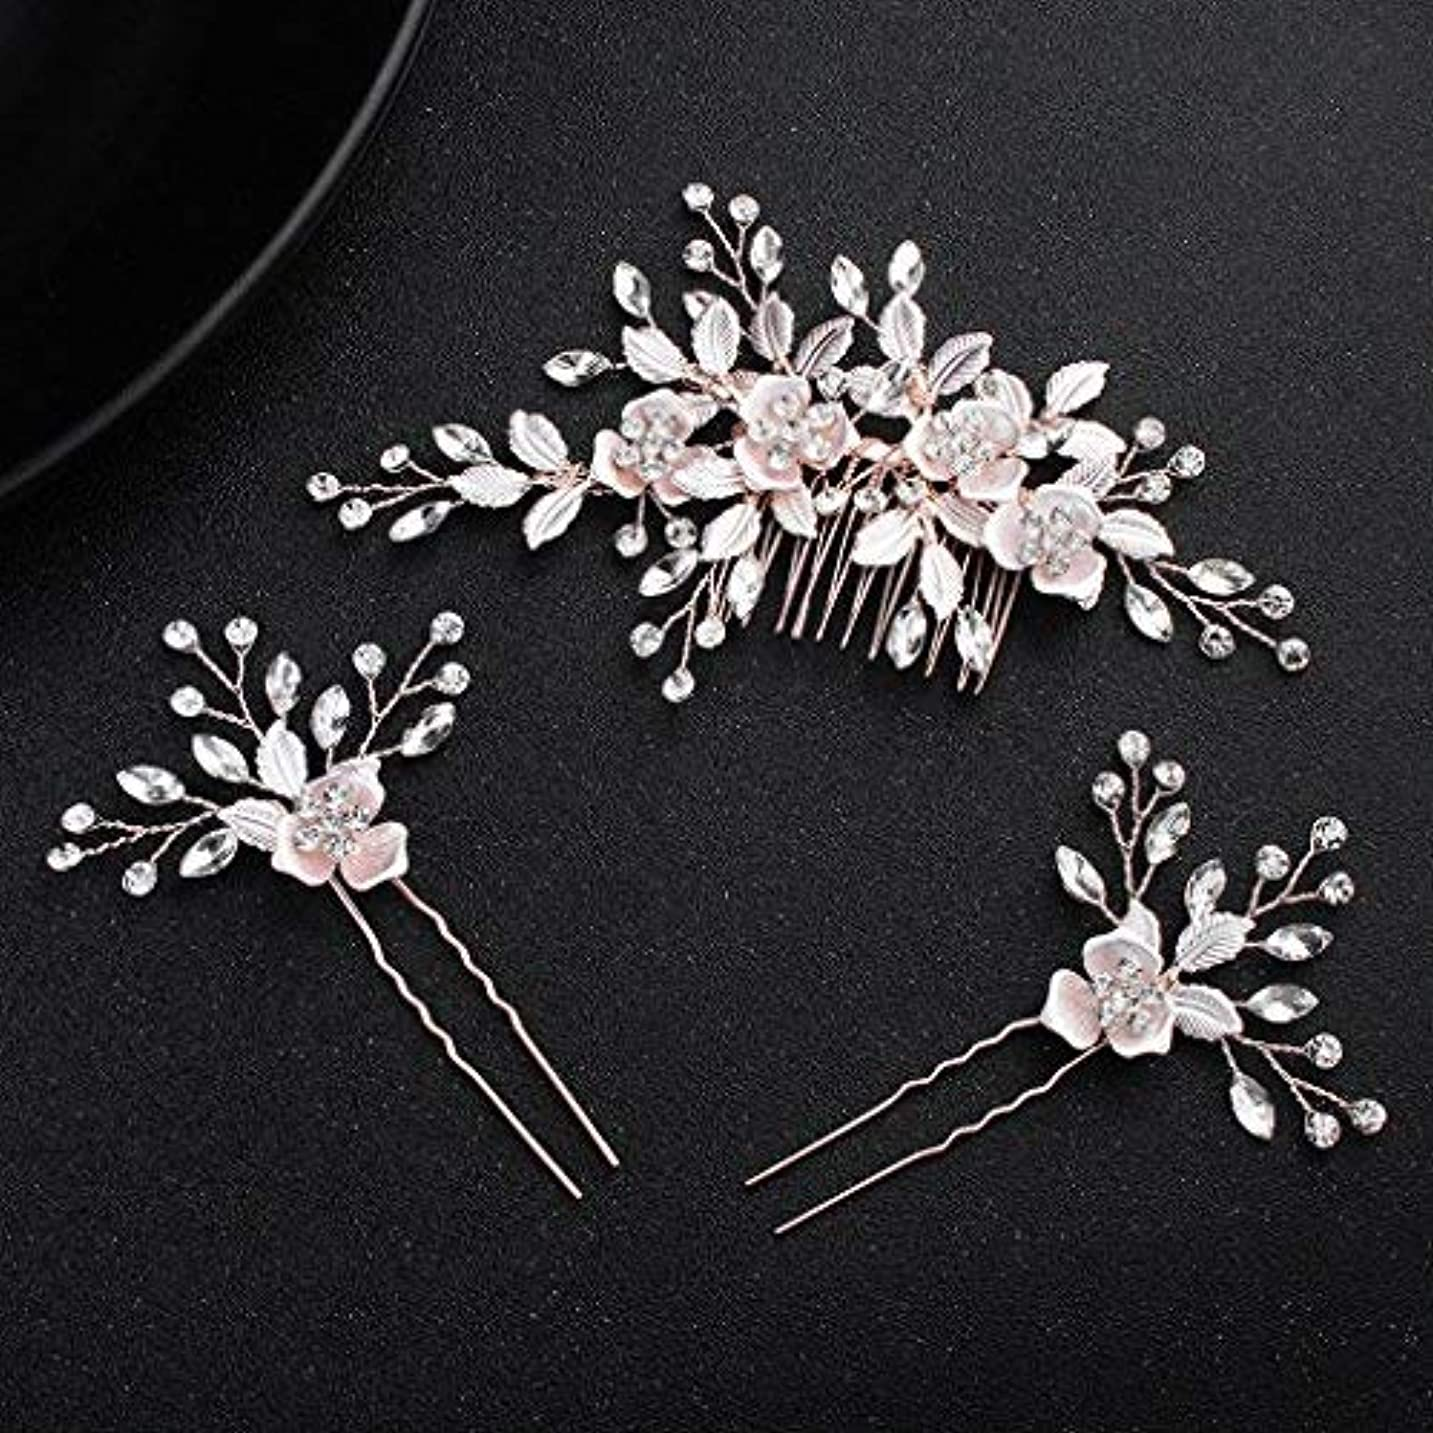 obqoo Crystal Flowers Style Colorful Leaves Metal Bridal Hair Comb with 2 pcs Pins Rose Gold [並行輸入品]